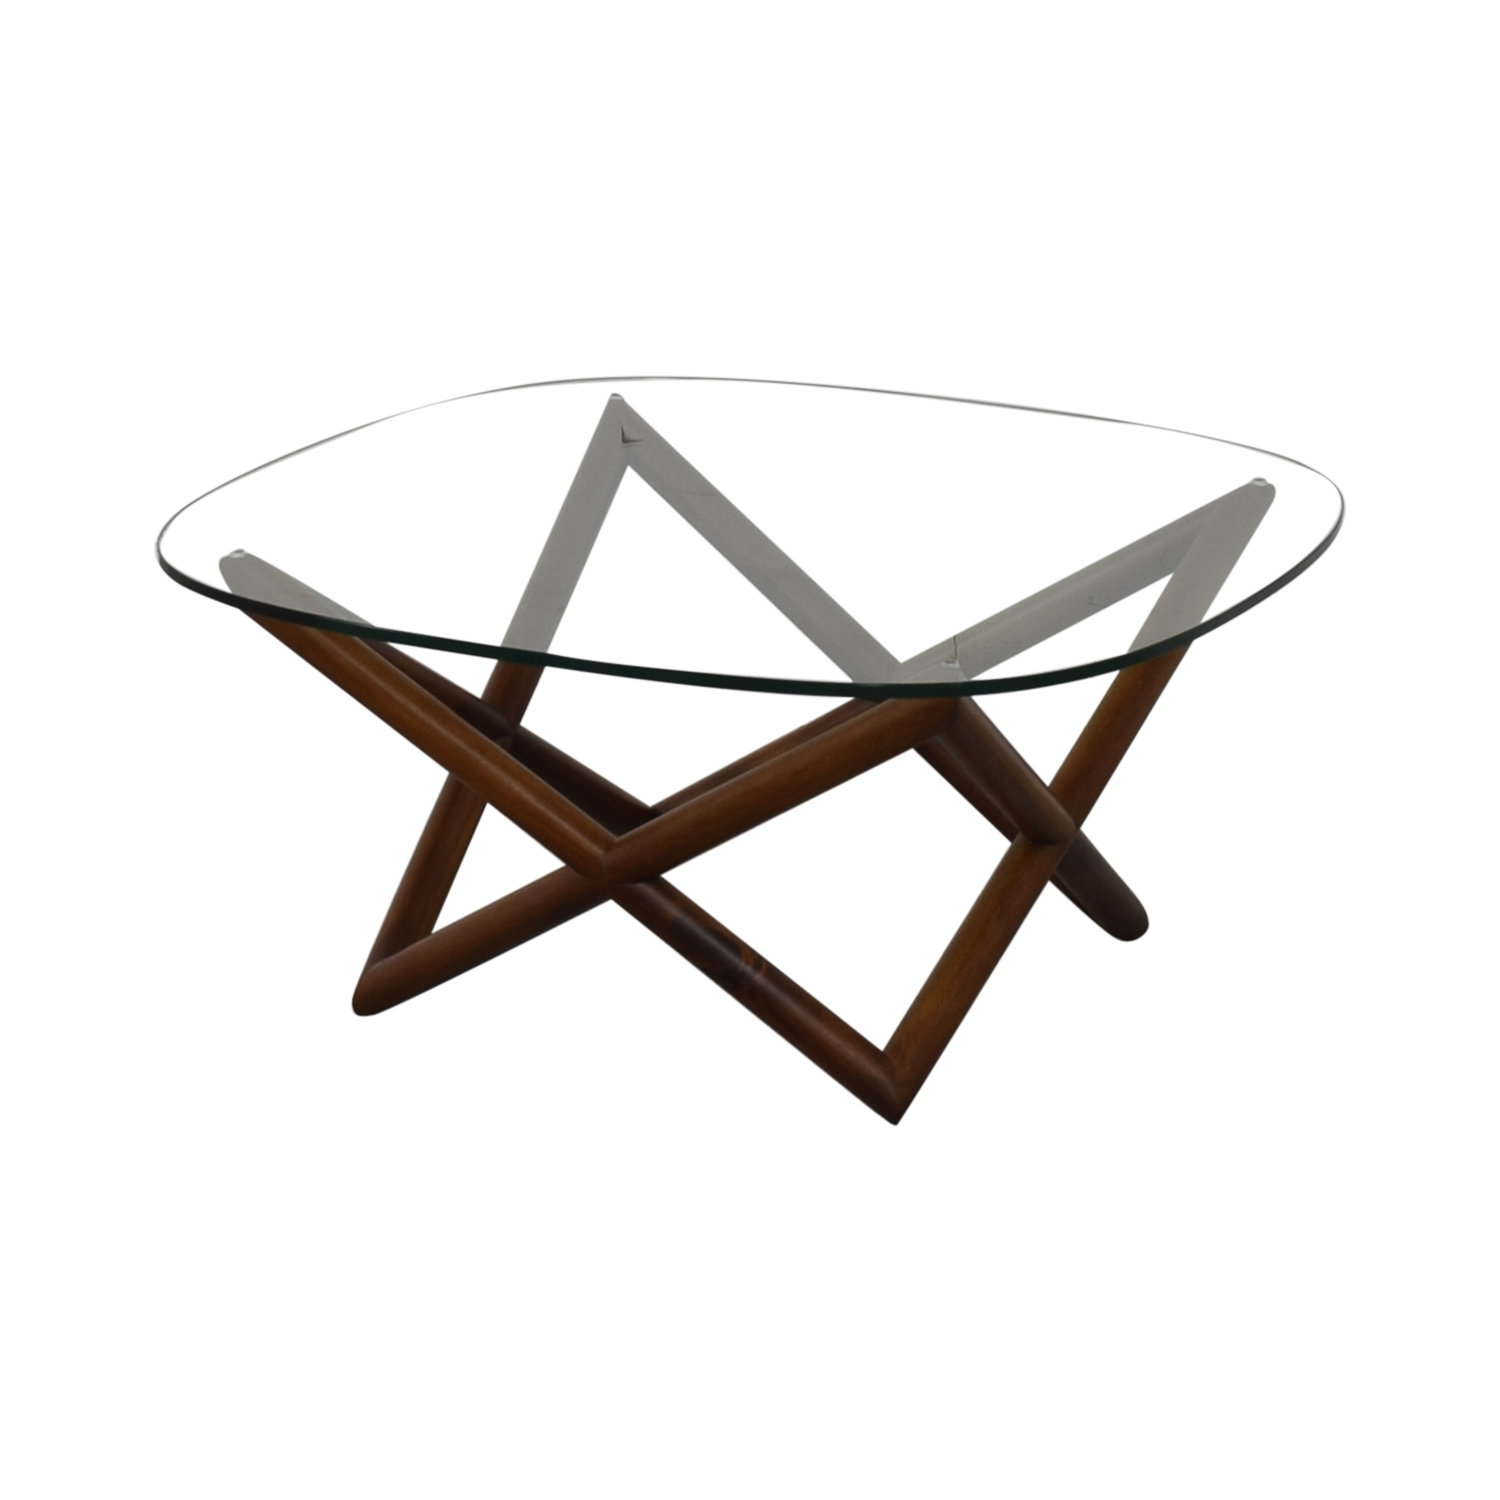 West Elm West Elm Spindle Glass Coffee Table on sale